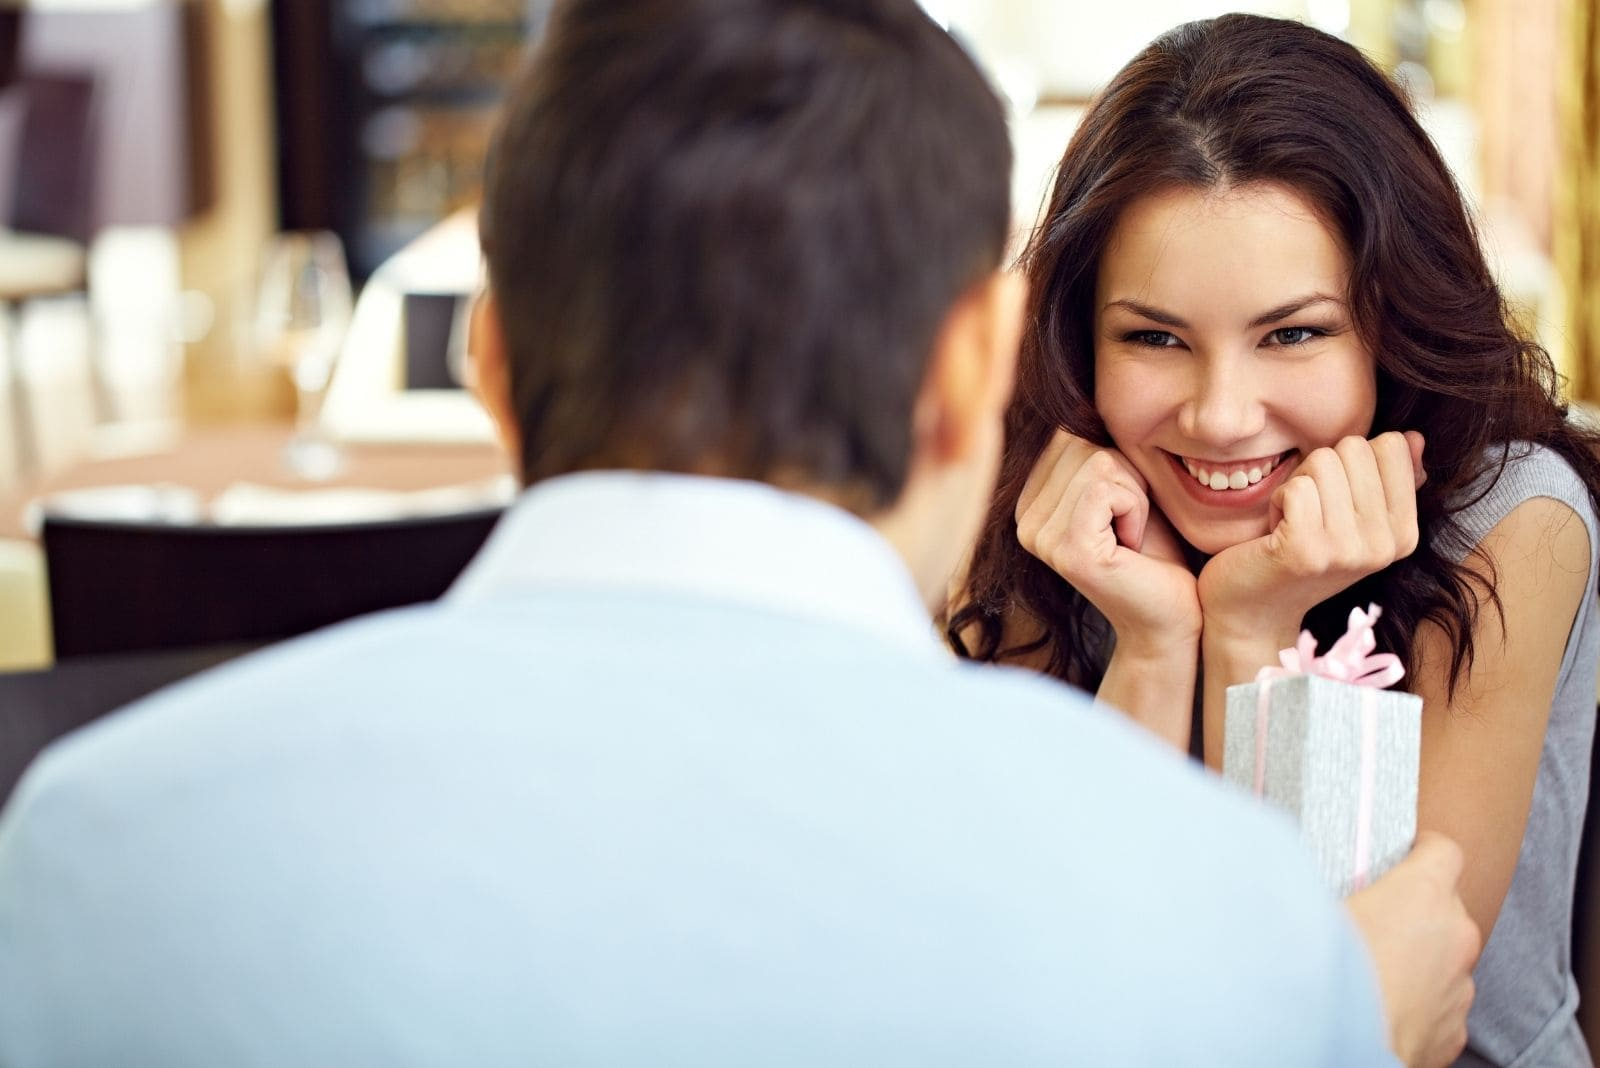 giggling beautiful woman over the gift of the man while having dinner